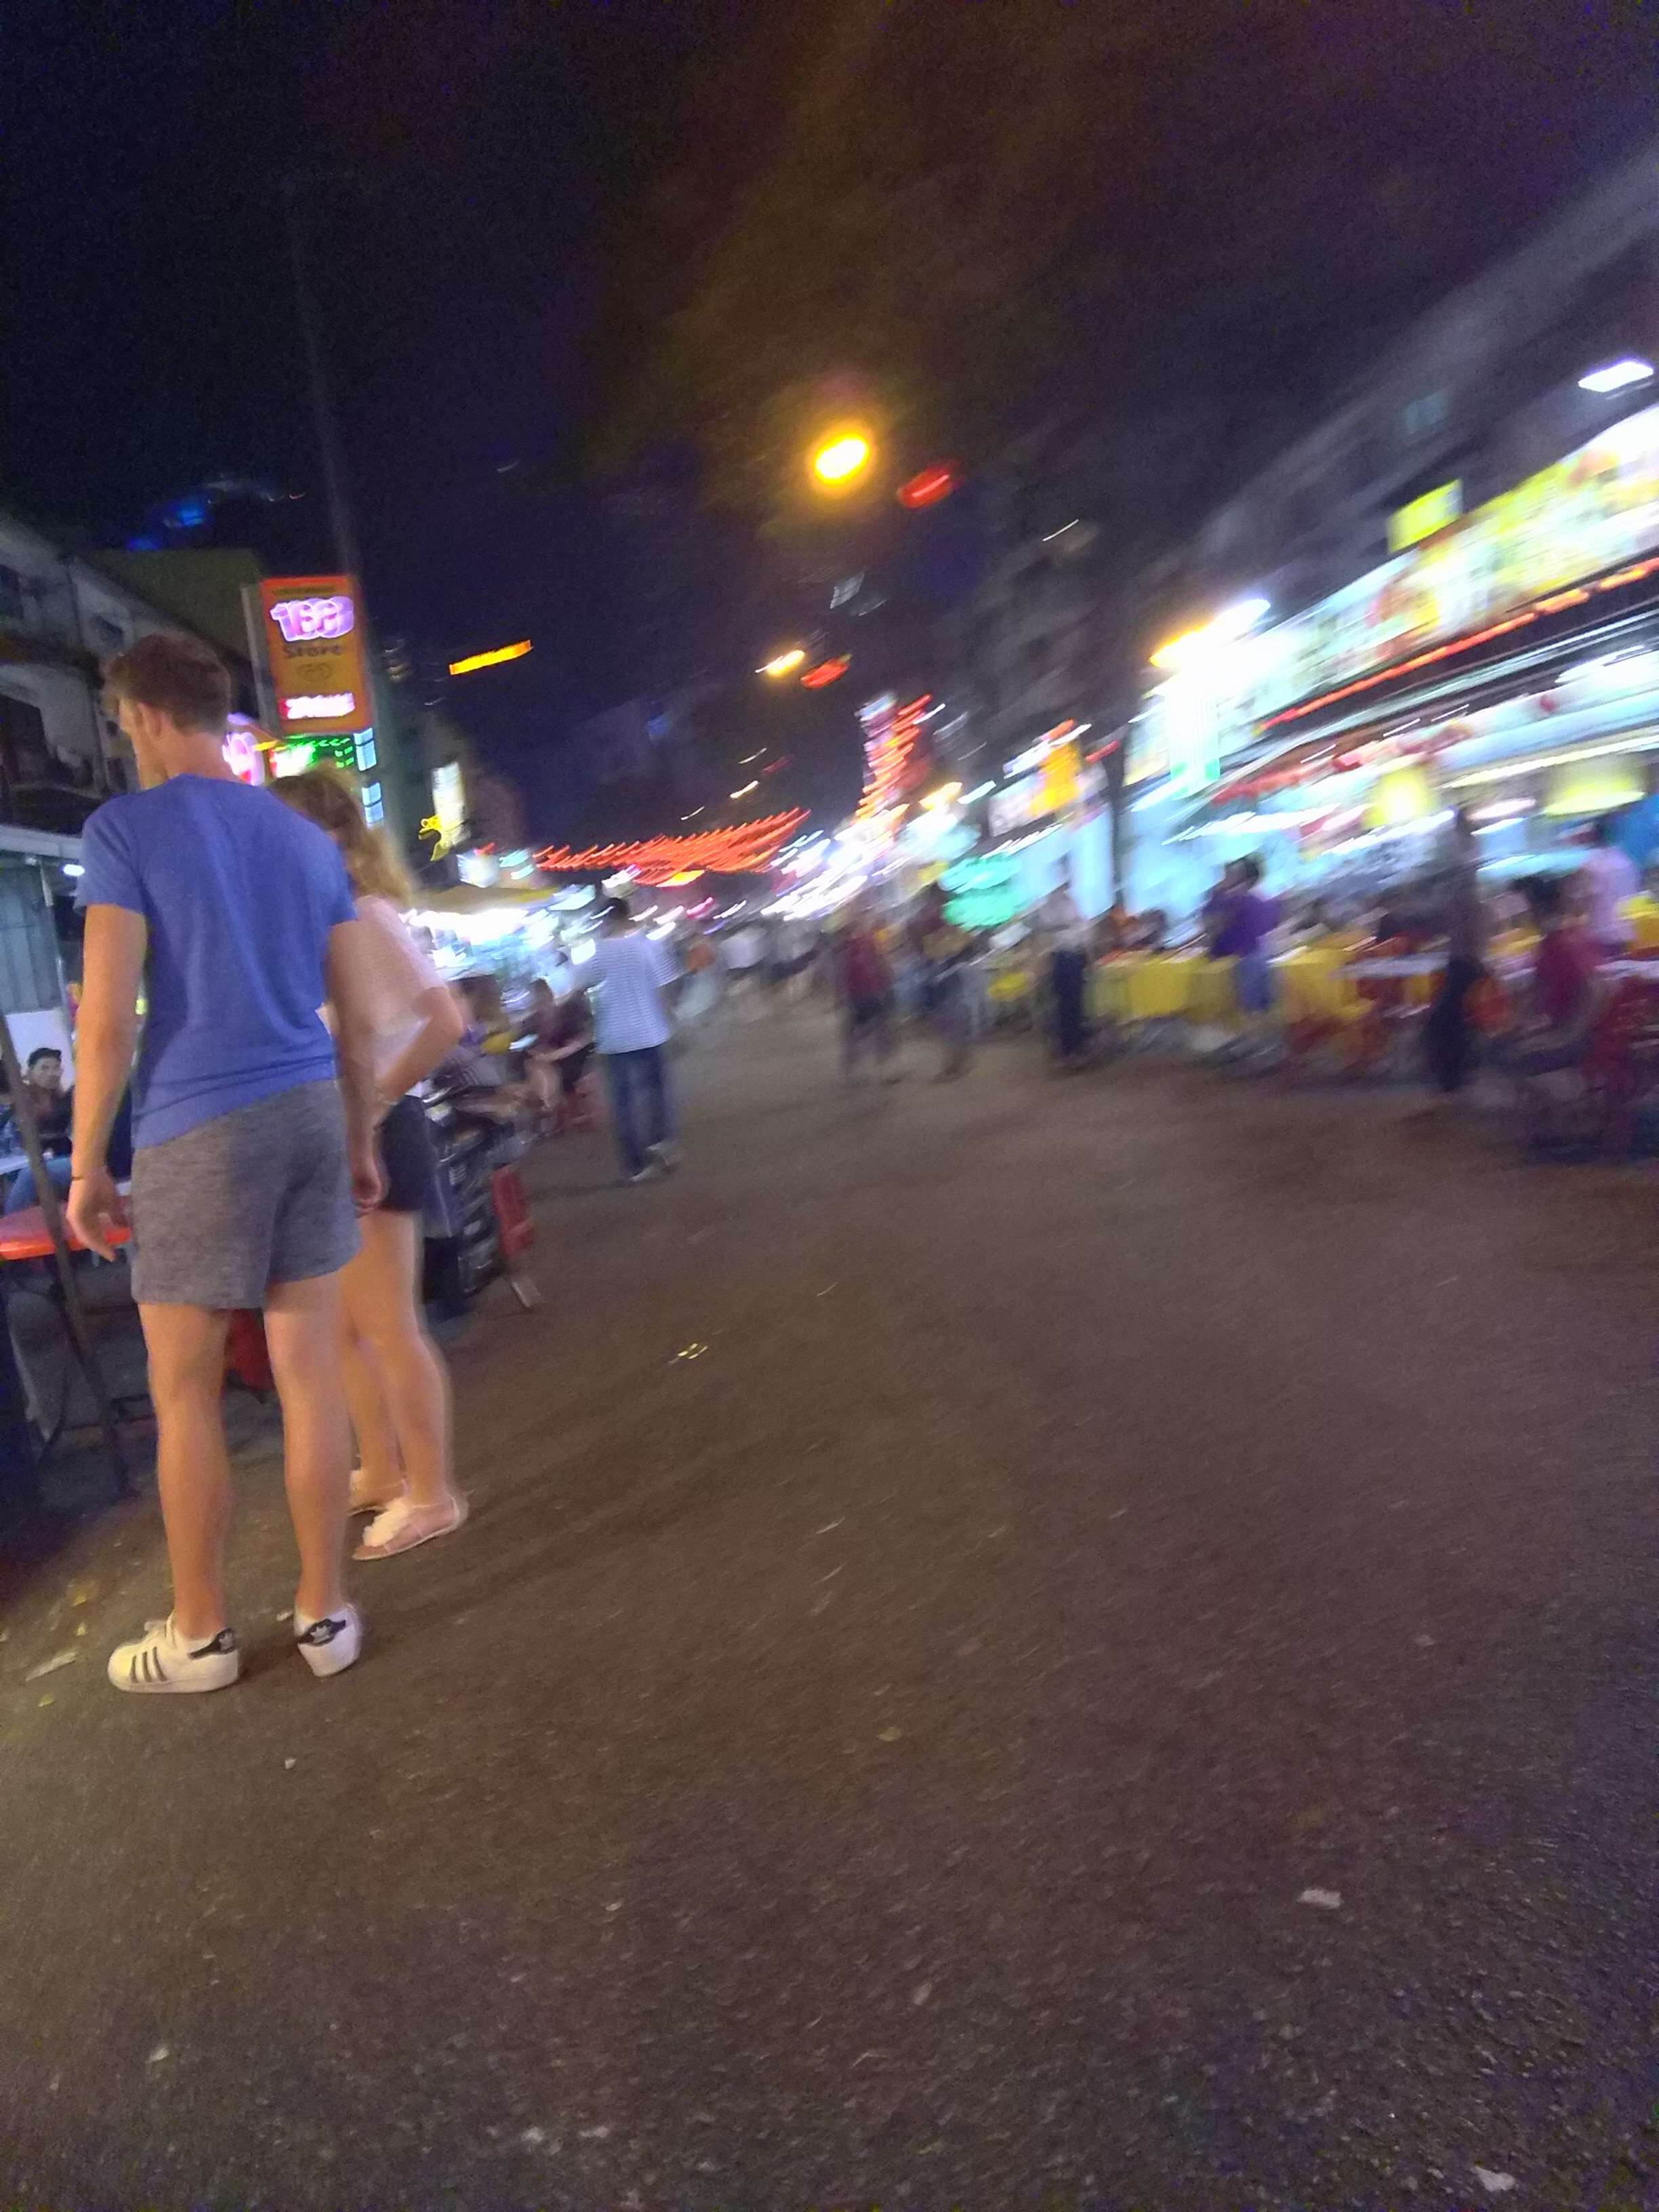 The crowds of people in Jalan Alor during the weekend! It's a busy food market!